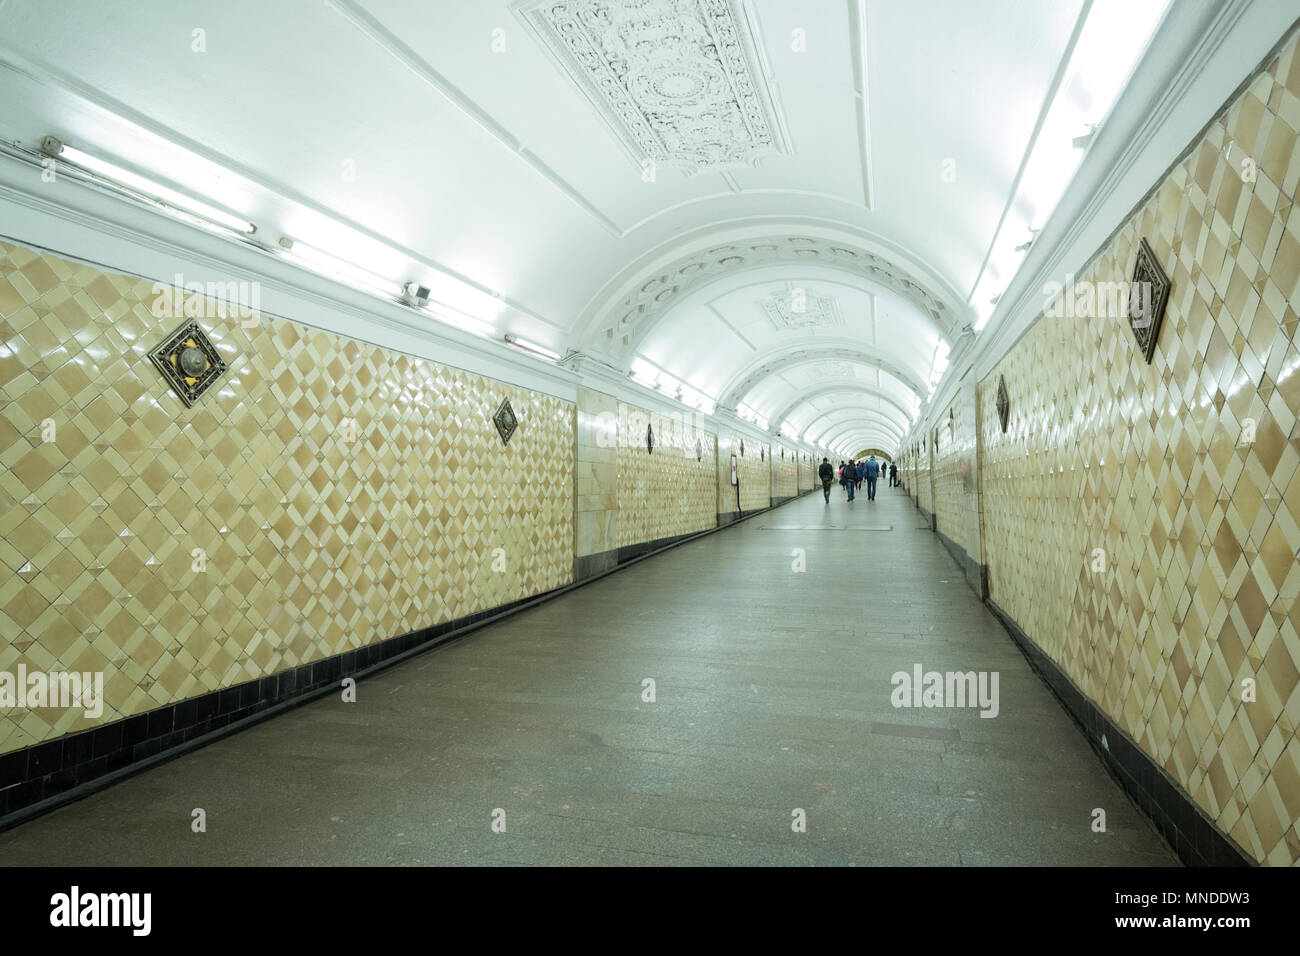 Metro station, Moscow, Russia - Stock Image